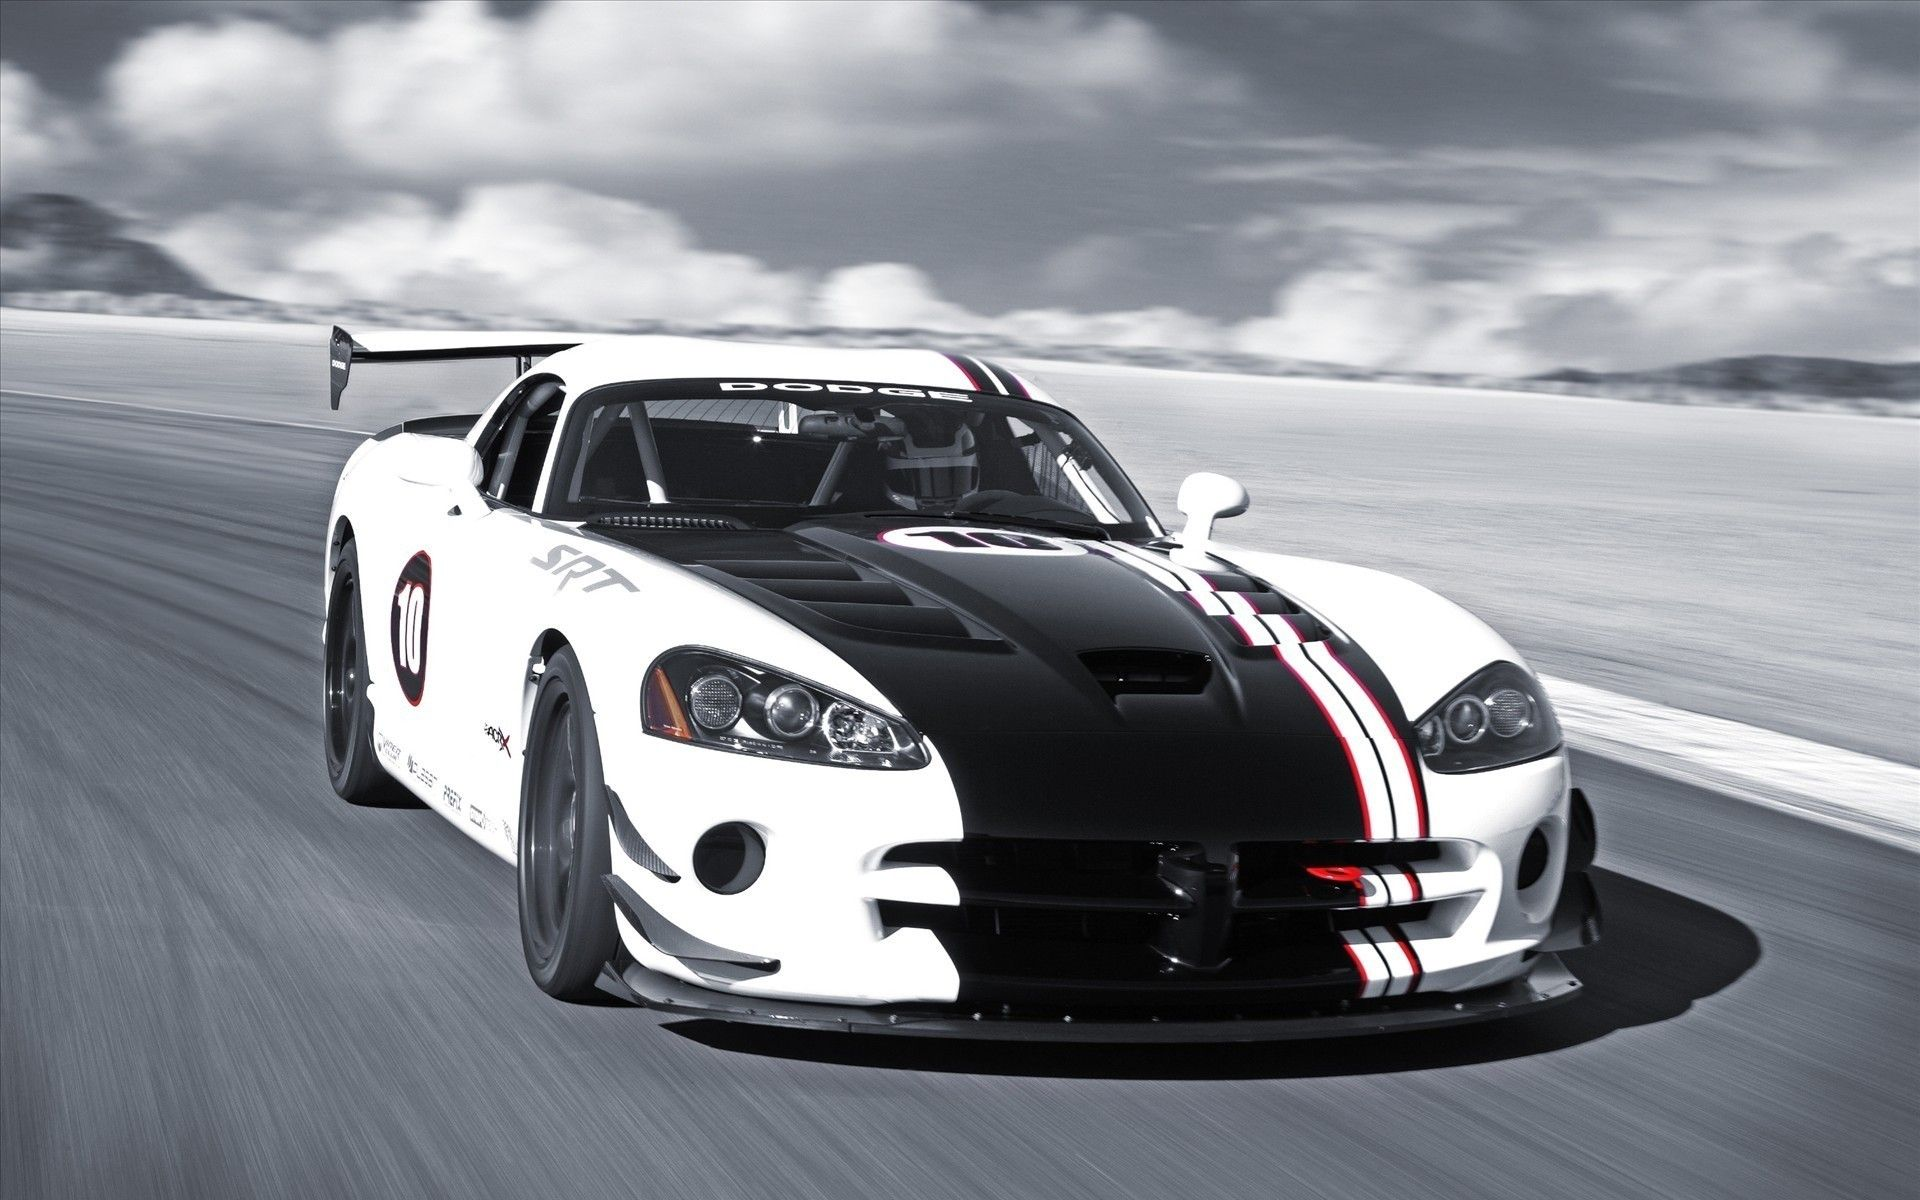 Download Wallpaper Black And White Car Dodge Viper, Photo Wallpaper    1920x1200